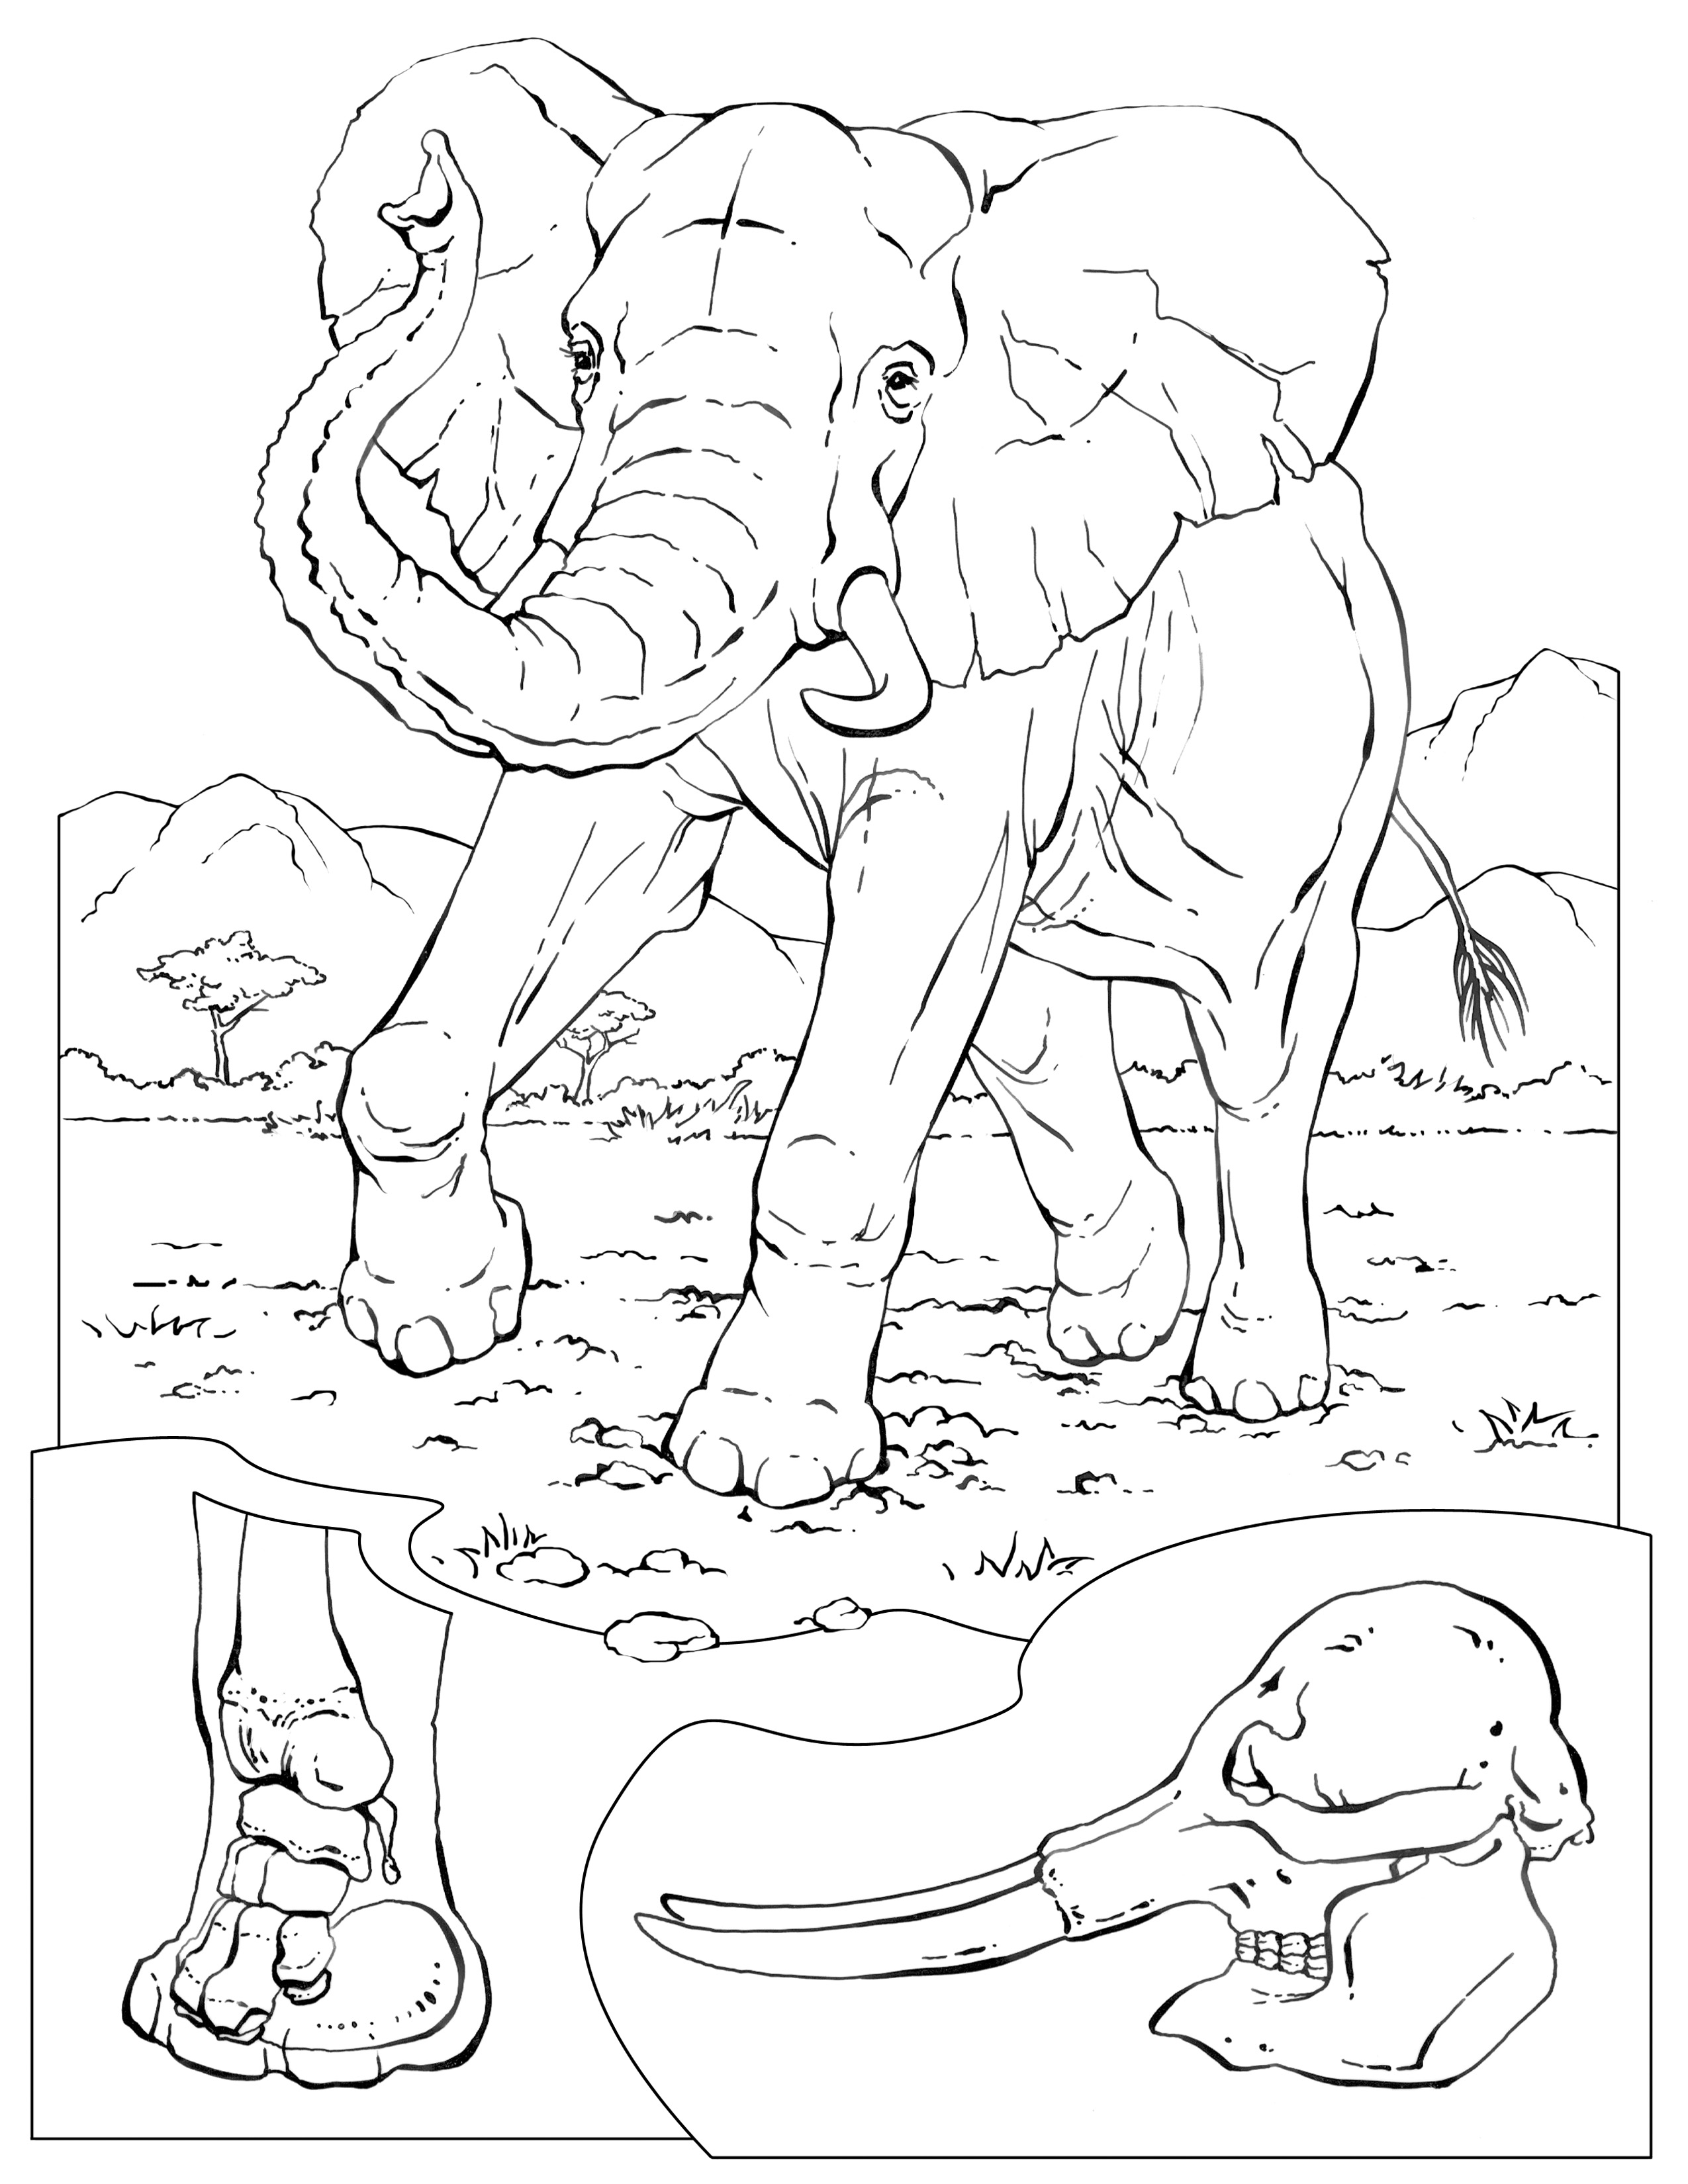 animal habitat coloring pages 30 best coloring habitats and animals images on pinterest habitat animal pages coloring